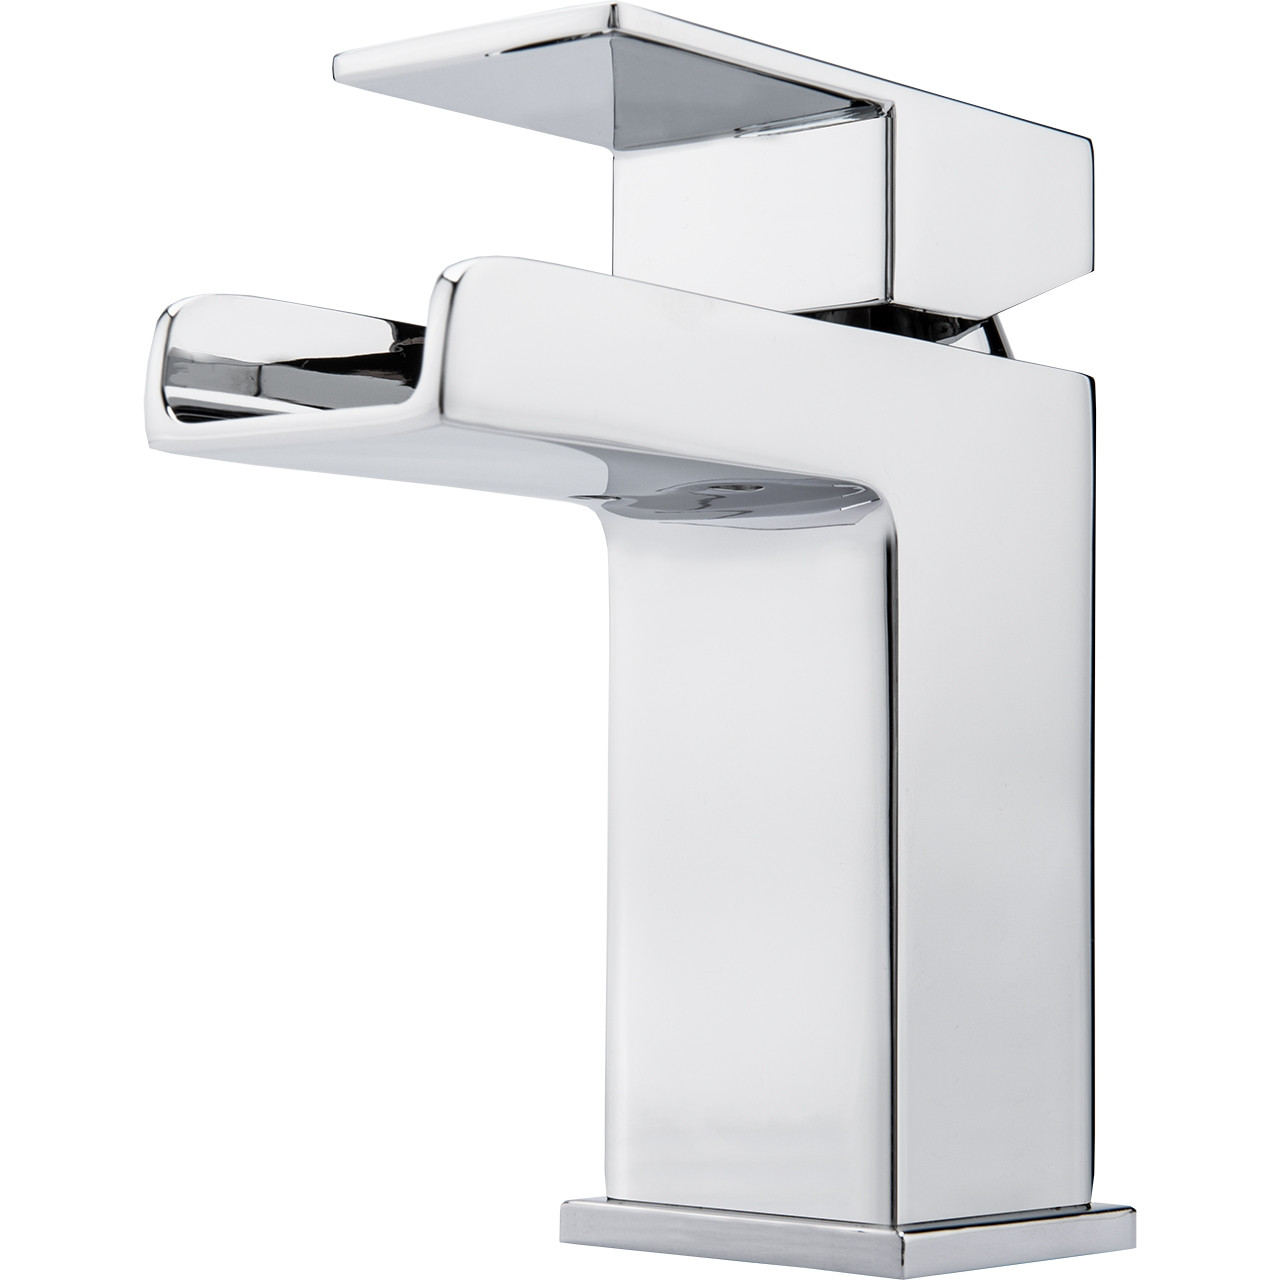 Cubix Waterfall Mono Basin Mixer Tap